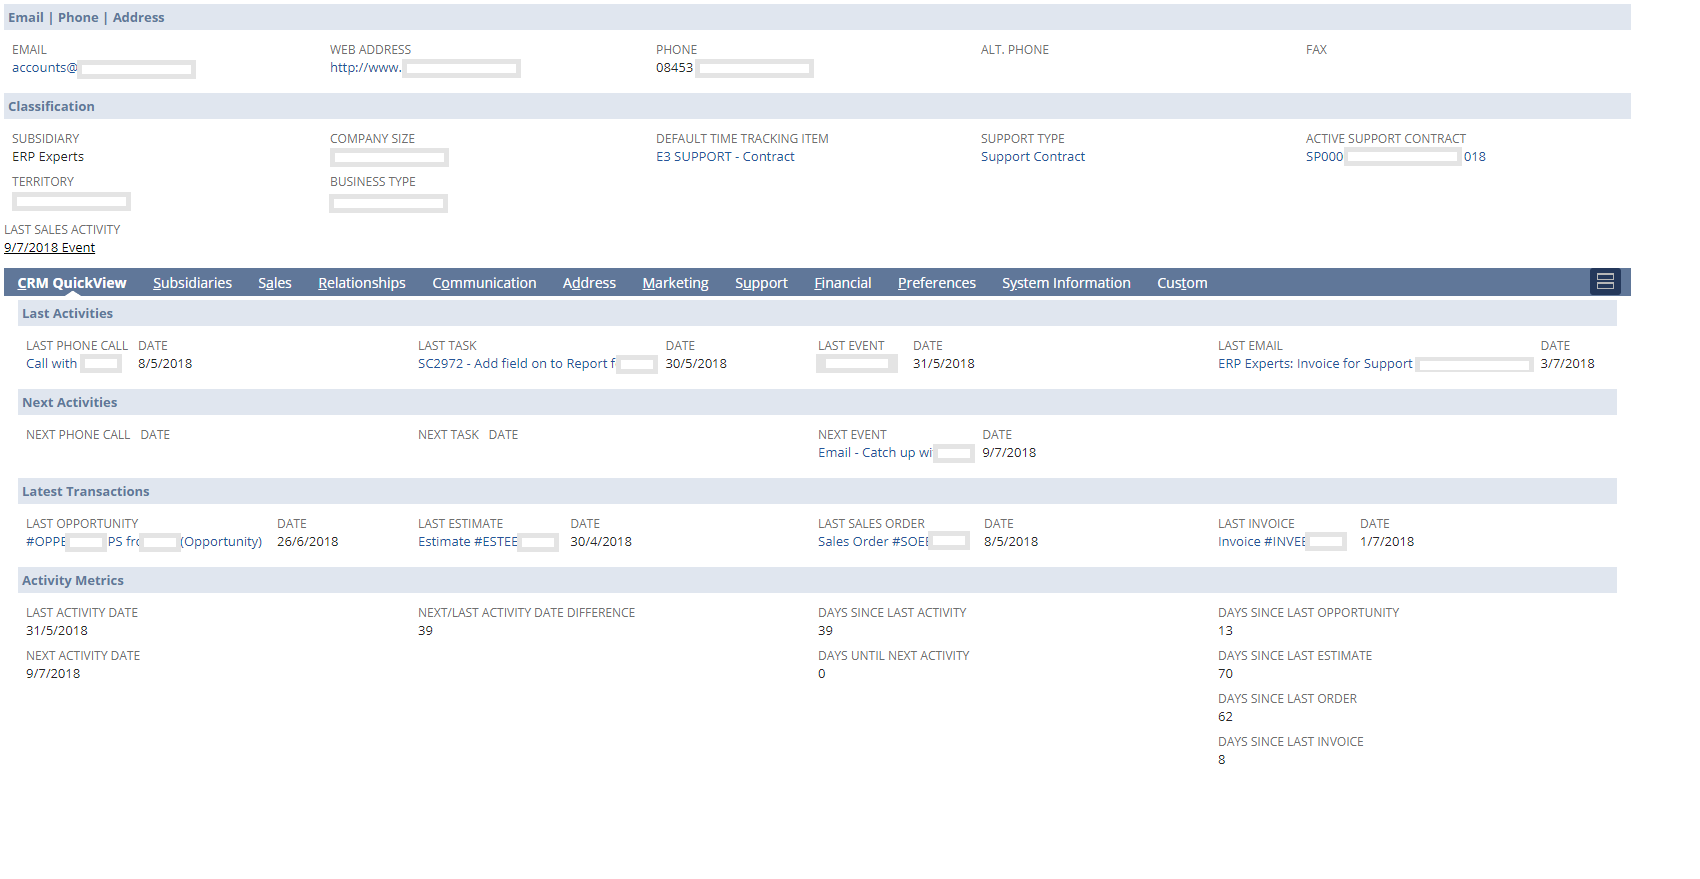 CRM QuickView for NetSuite